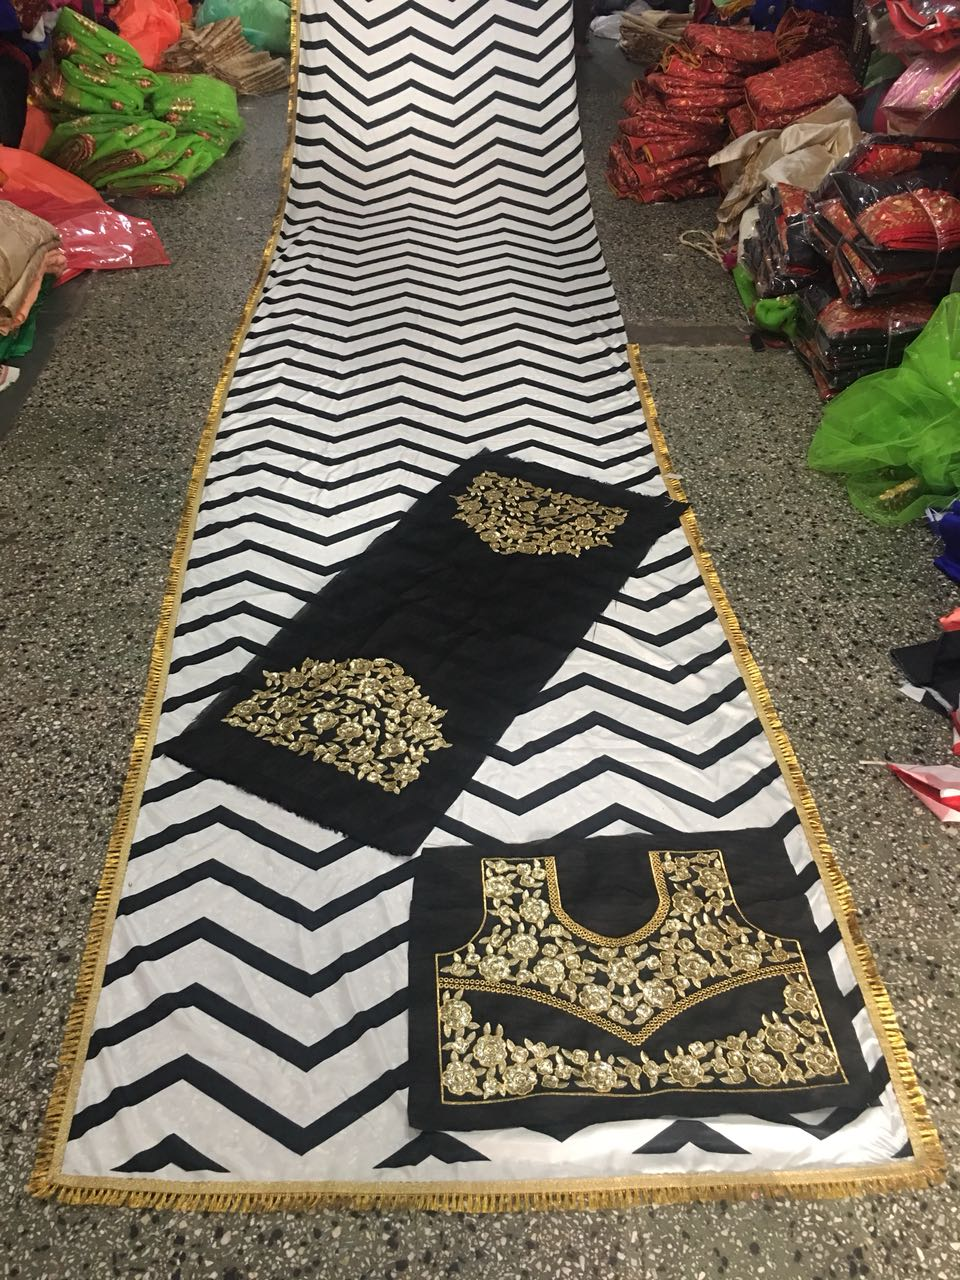 b69183571a ... Designer White & Black American Crep With Print Blause Banglory With  Siqaunce Work Saree ...